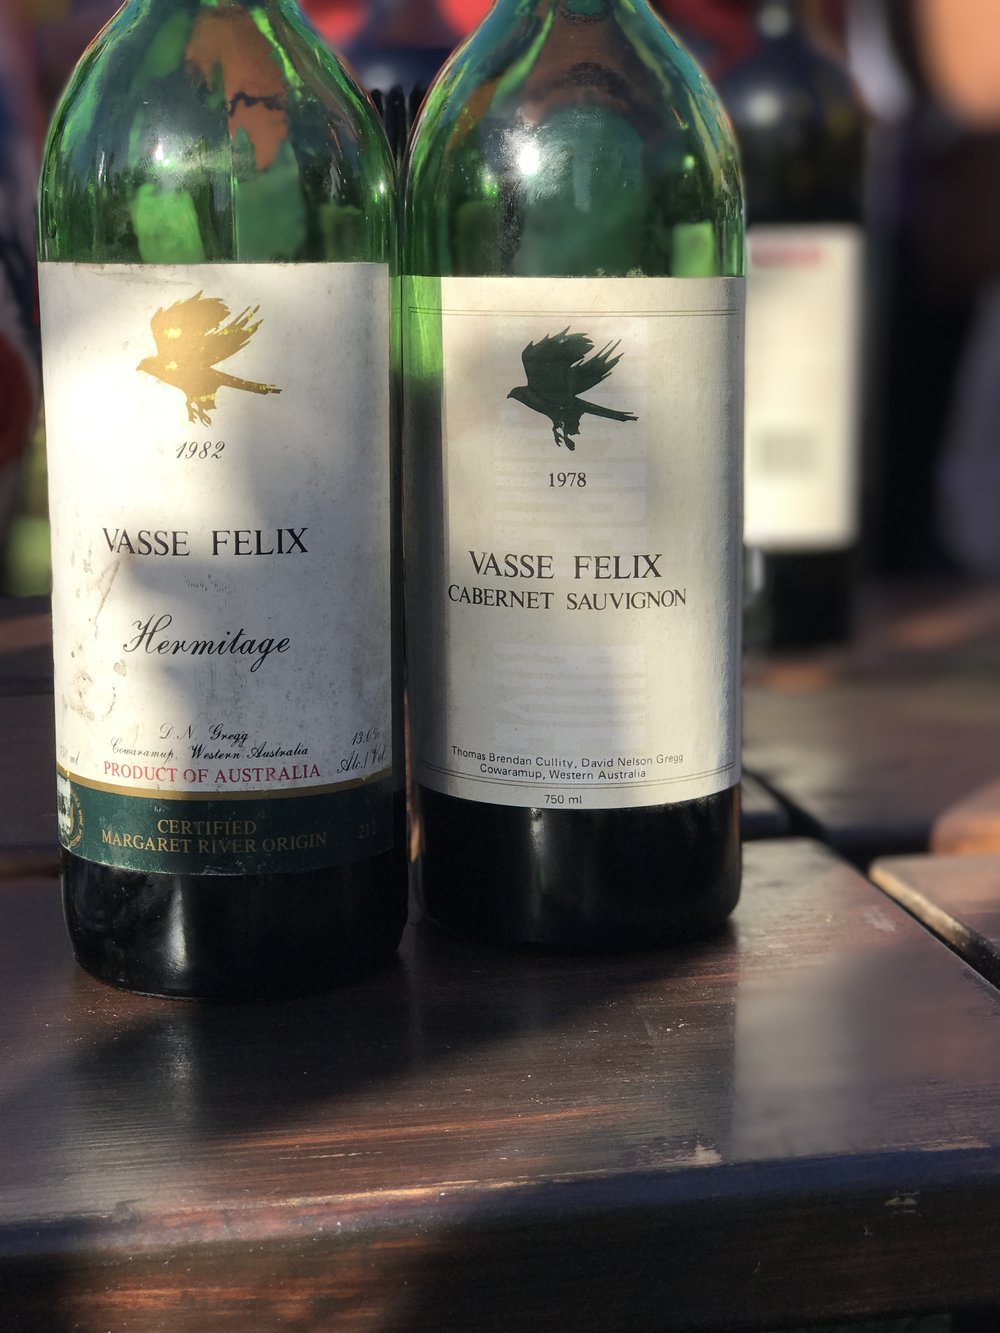 Two of the many premium wines on offer on Friday.  It is perhaps unnecessary to note that both of these wines were in superb form, and illustrated with grace what aged Margaret River Cabernet Sauvignon can offer.  Note the interesting watermark running vertically down the bottle on the right - this was the first time Margaret River had been displayed on the label of a Vasse Felix wine.